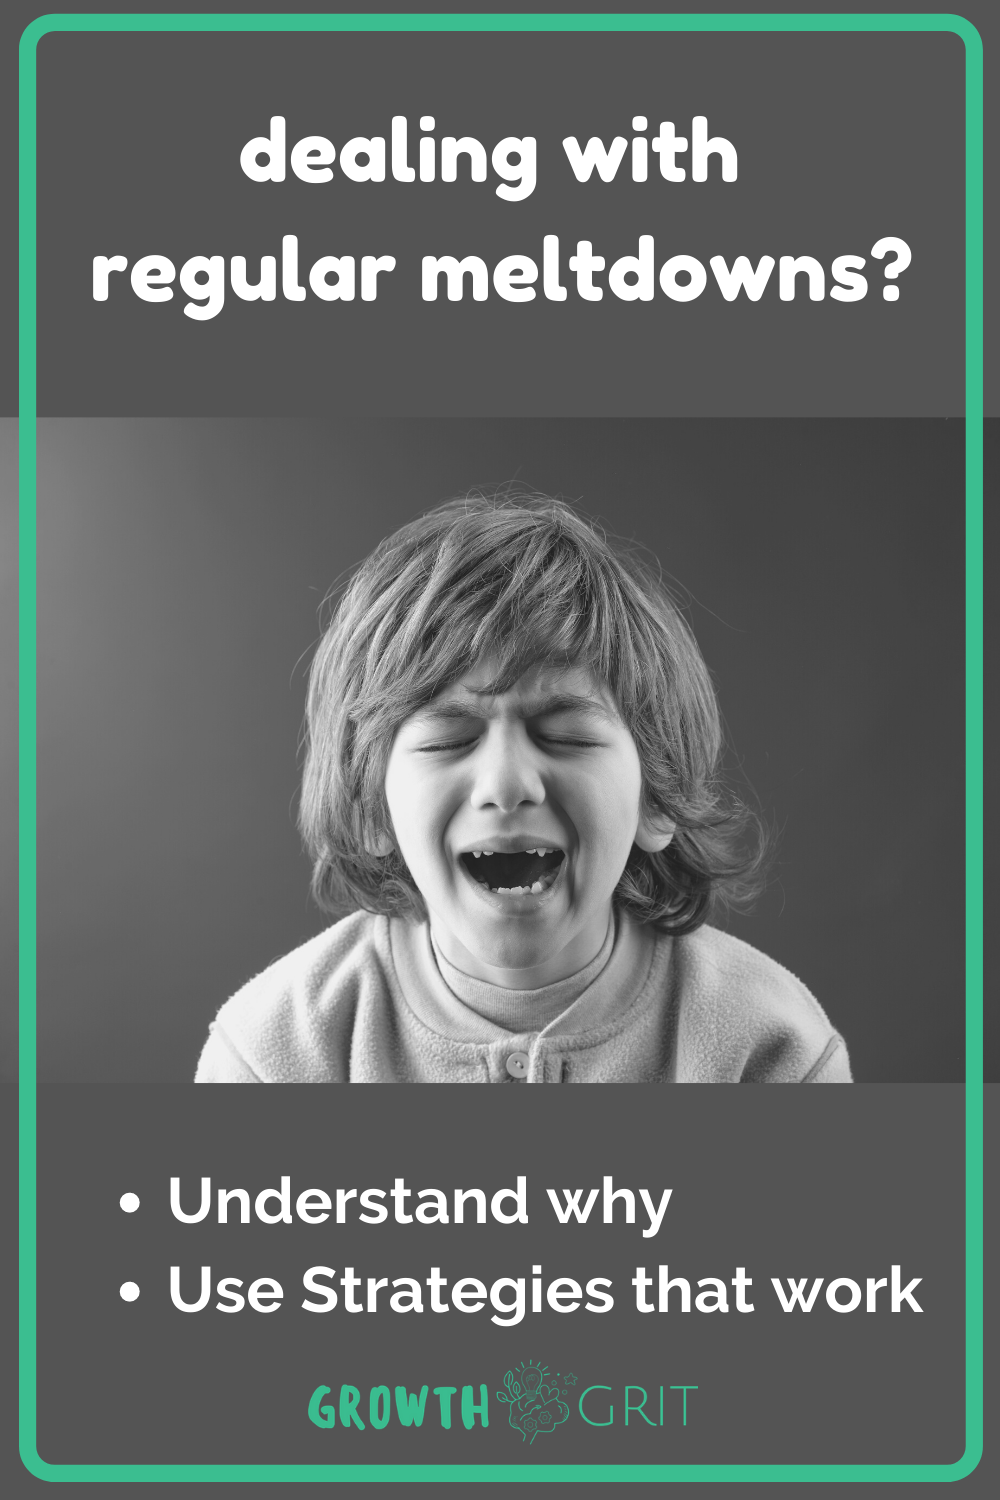 What to do about meltdowns